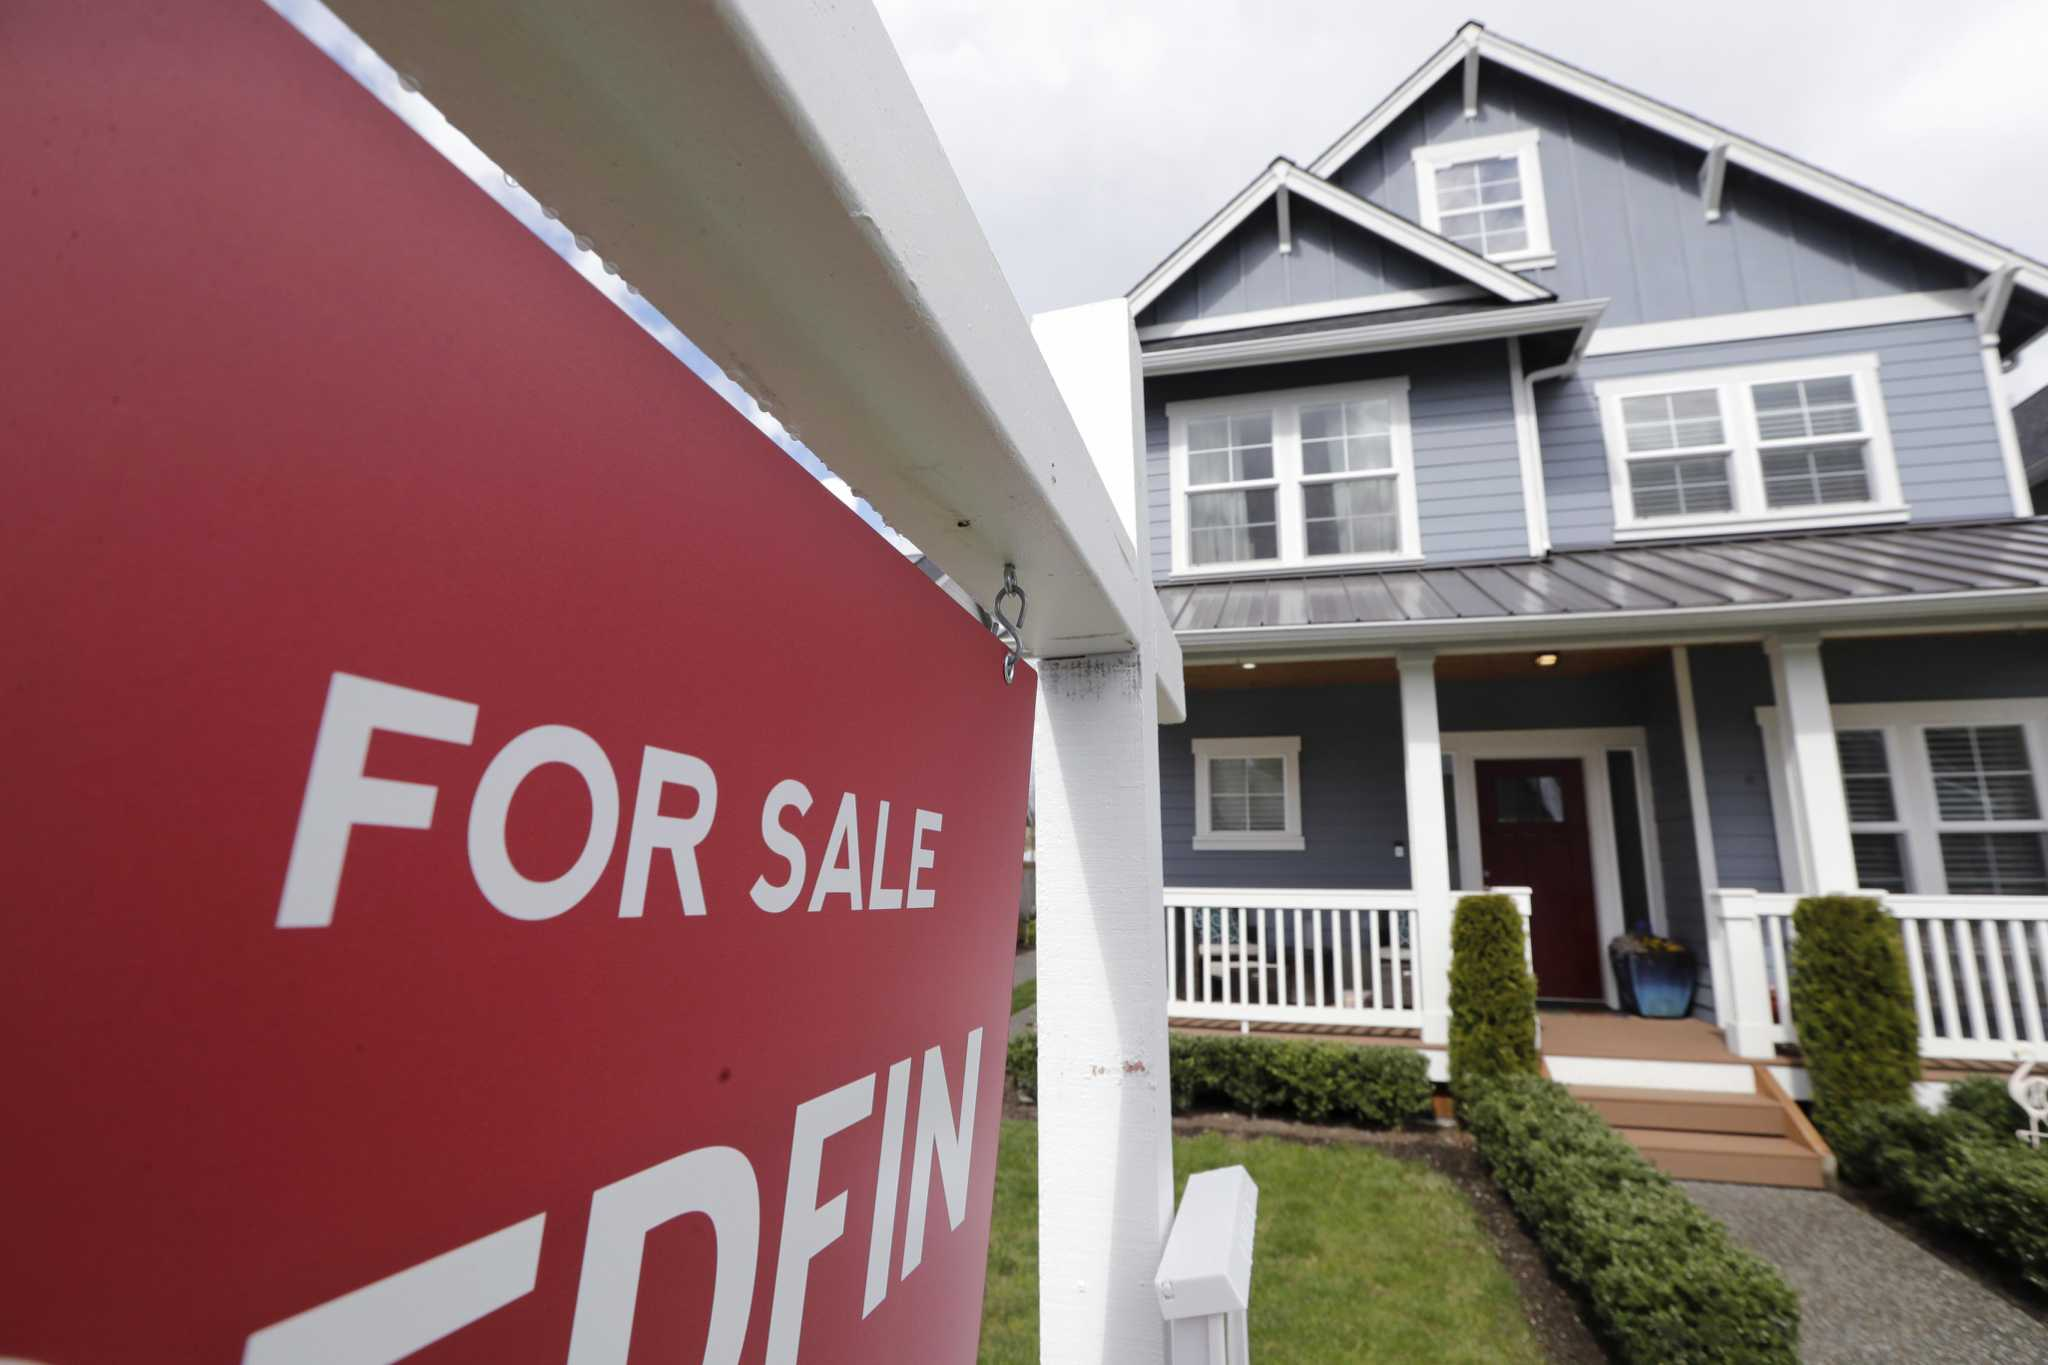 Supercharged housing market across the U.S. likely to persist